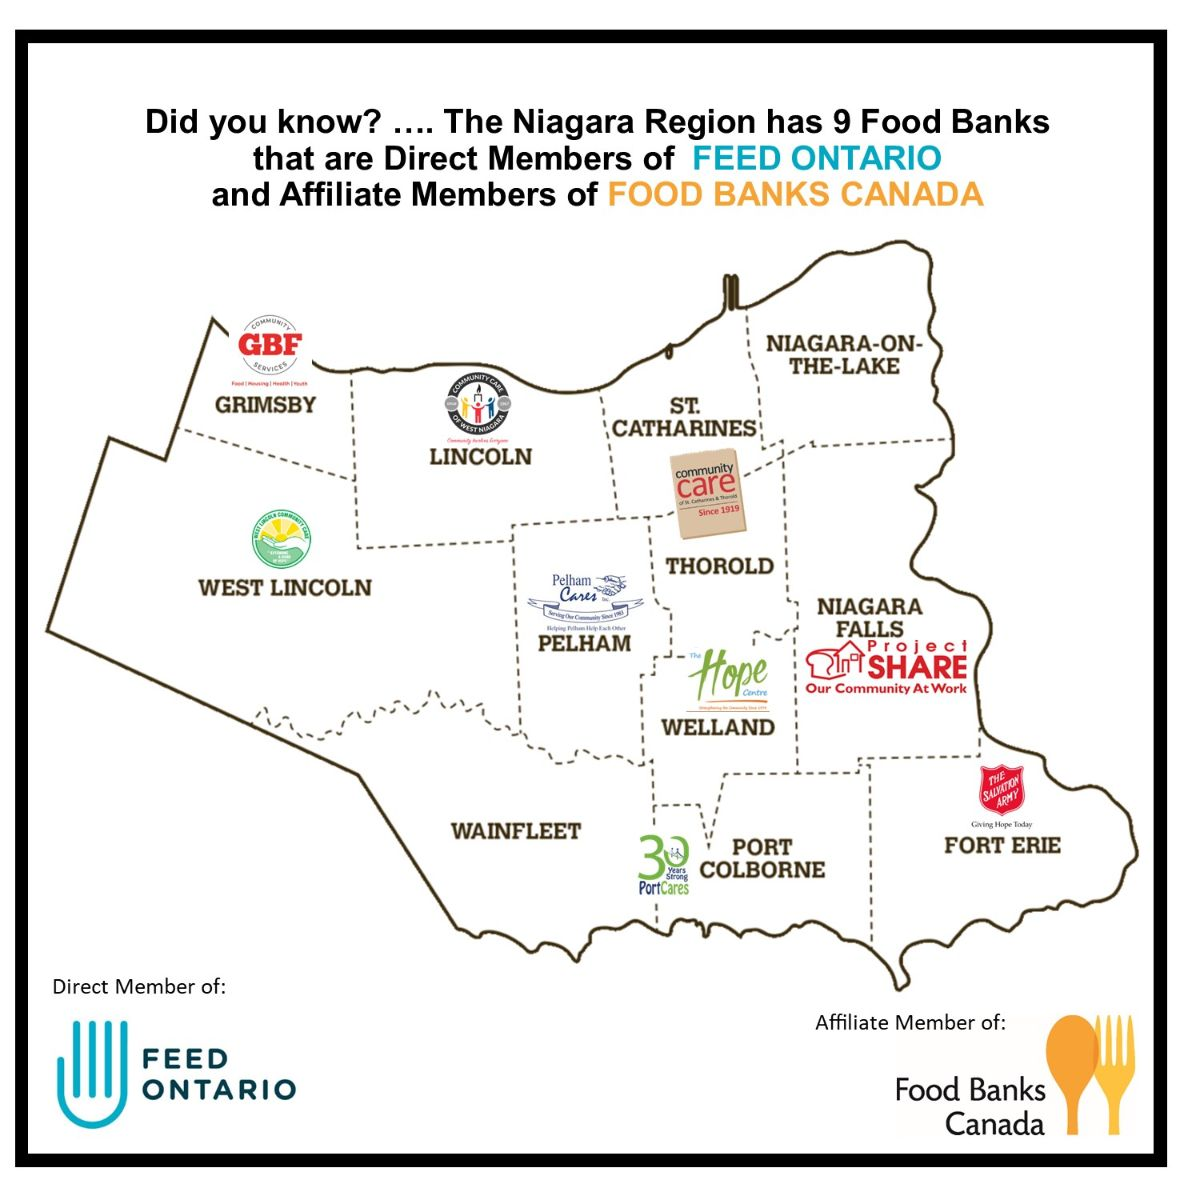 Did you know the Niagara Region has 9 food banks that are direct members of FEED Ontario and Affiliate Members of Food Banks Canada? Illustration of the Niagara Region and the 12 municipalities.